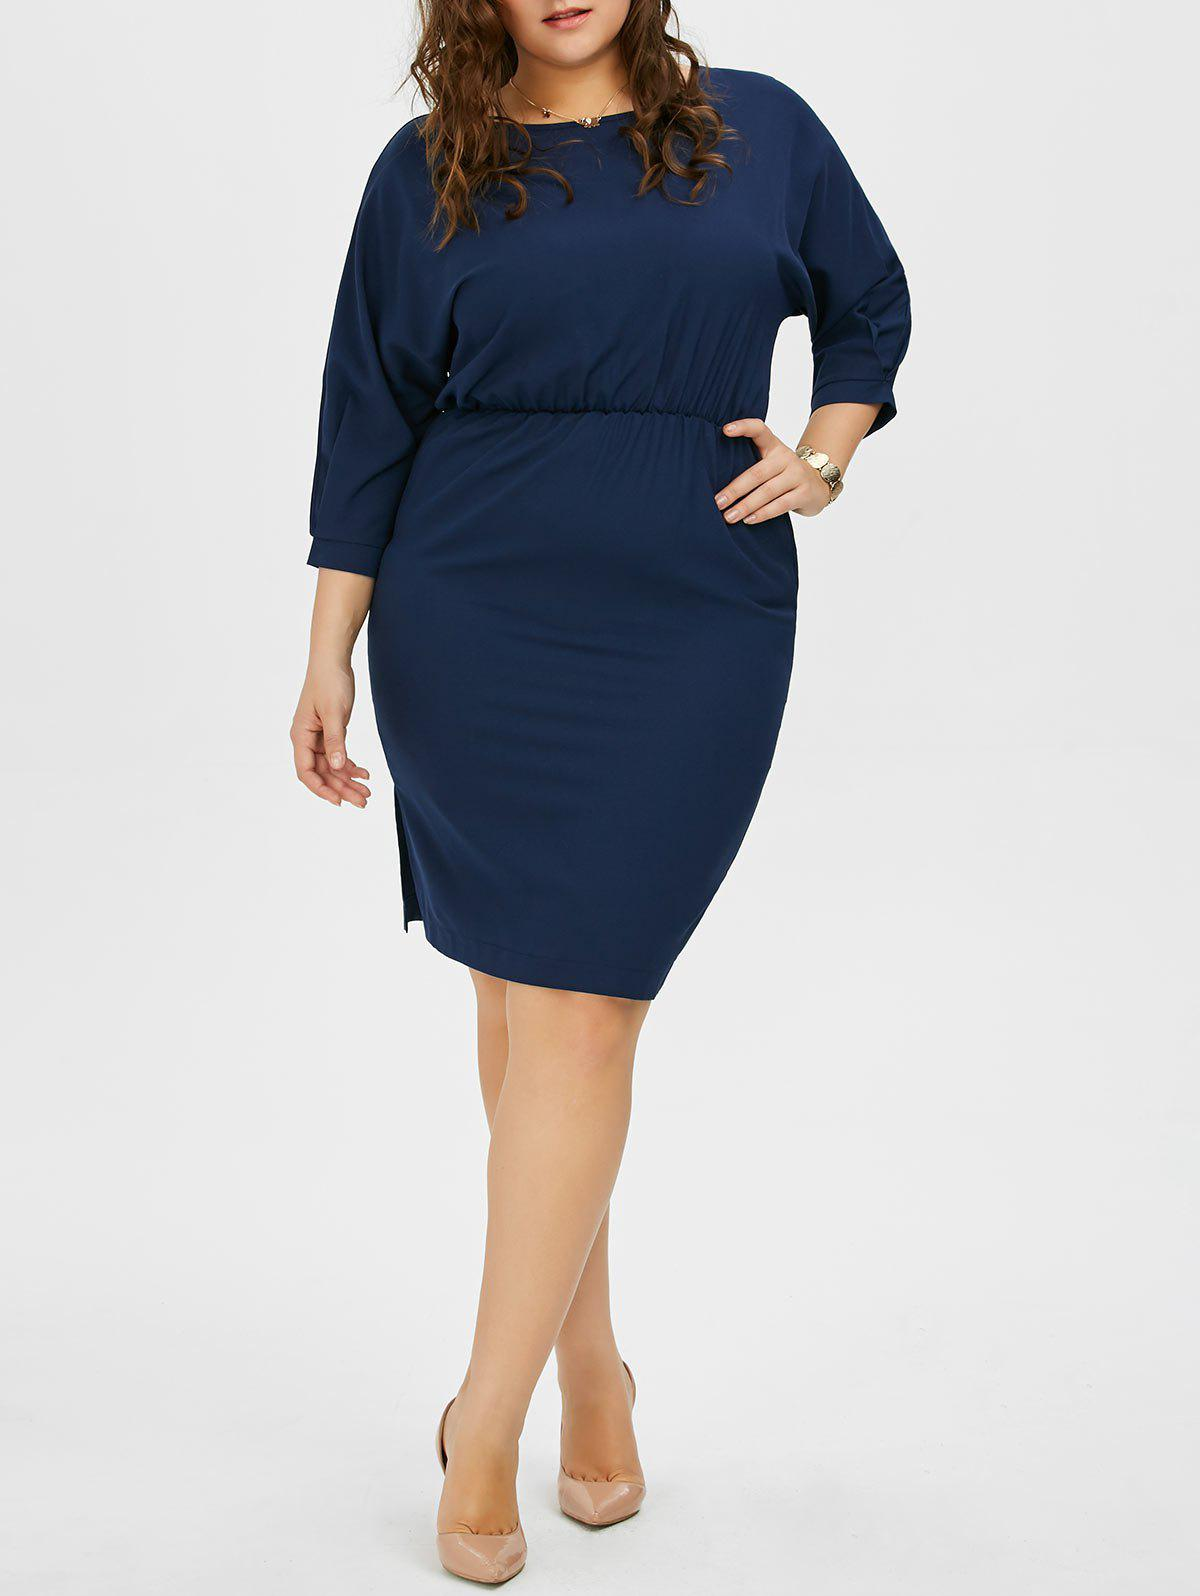 Plus Size Chiffon Dolman Sleeve Elastic Waist Dress - BLUE 4XL